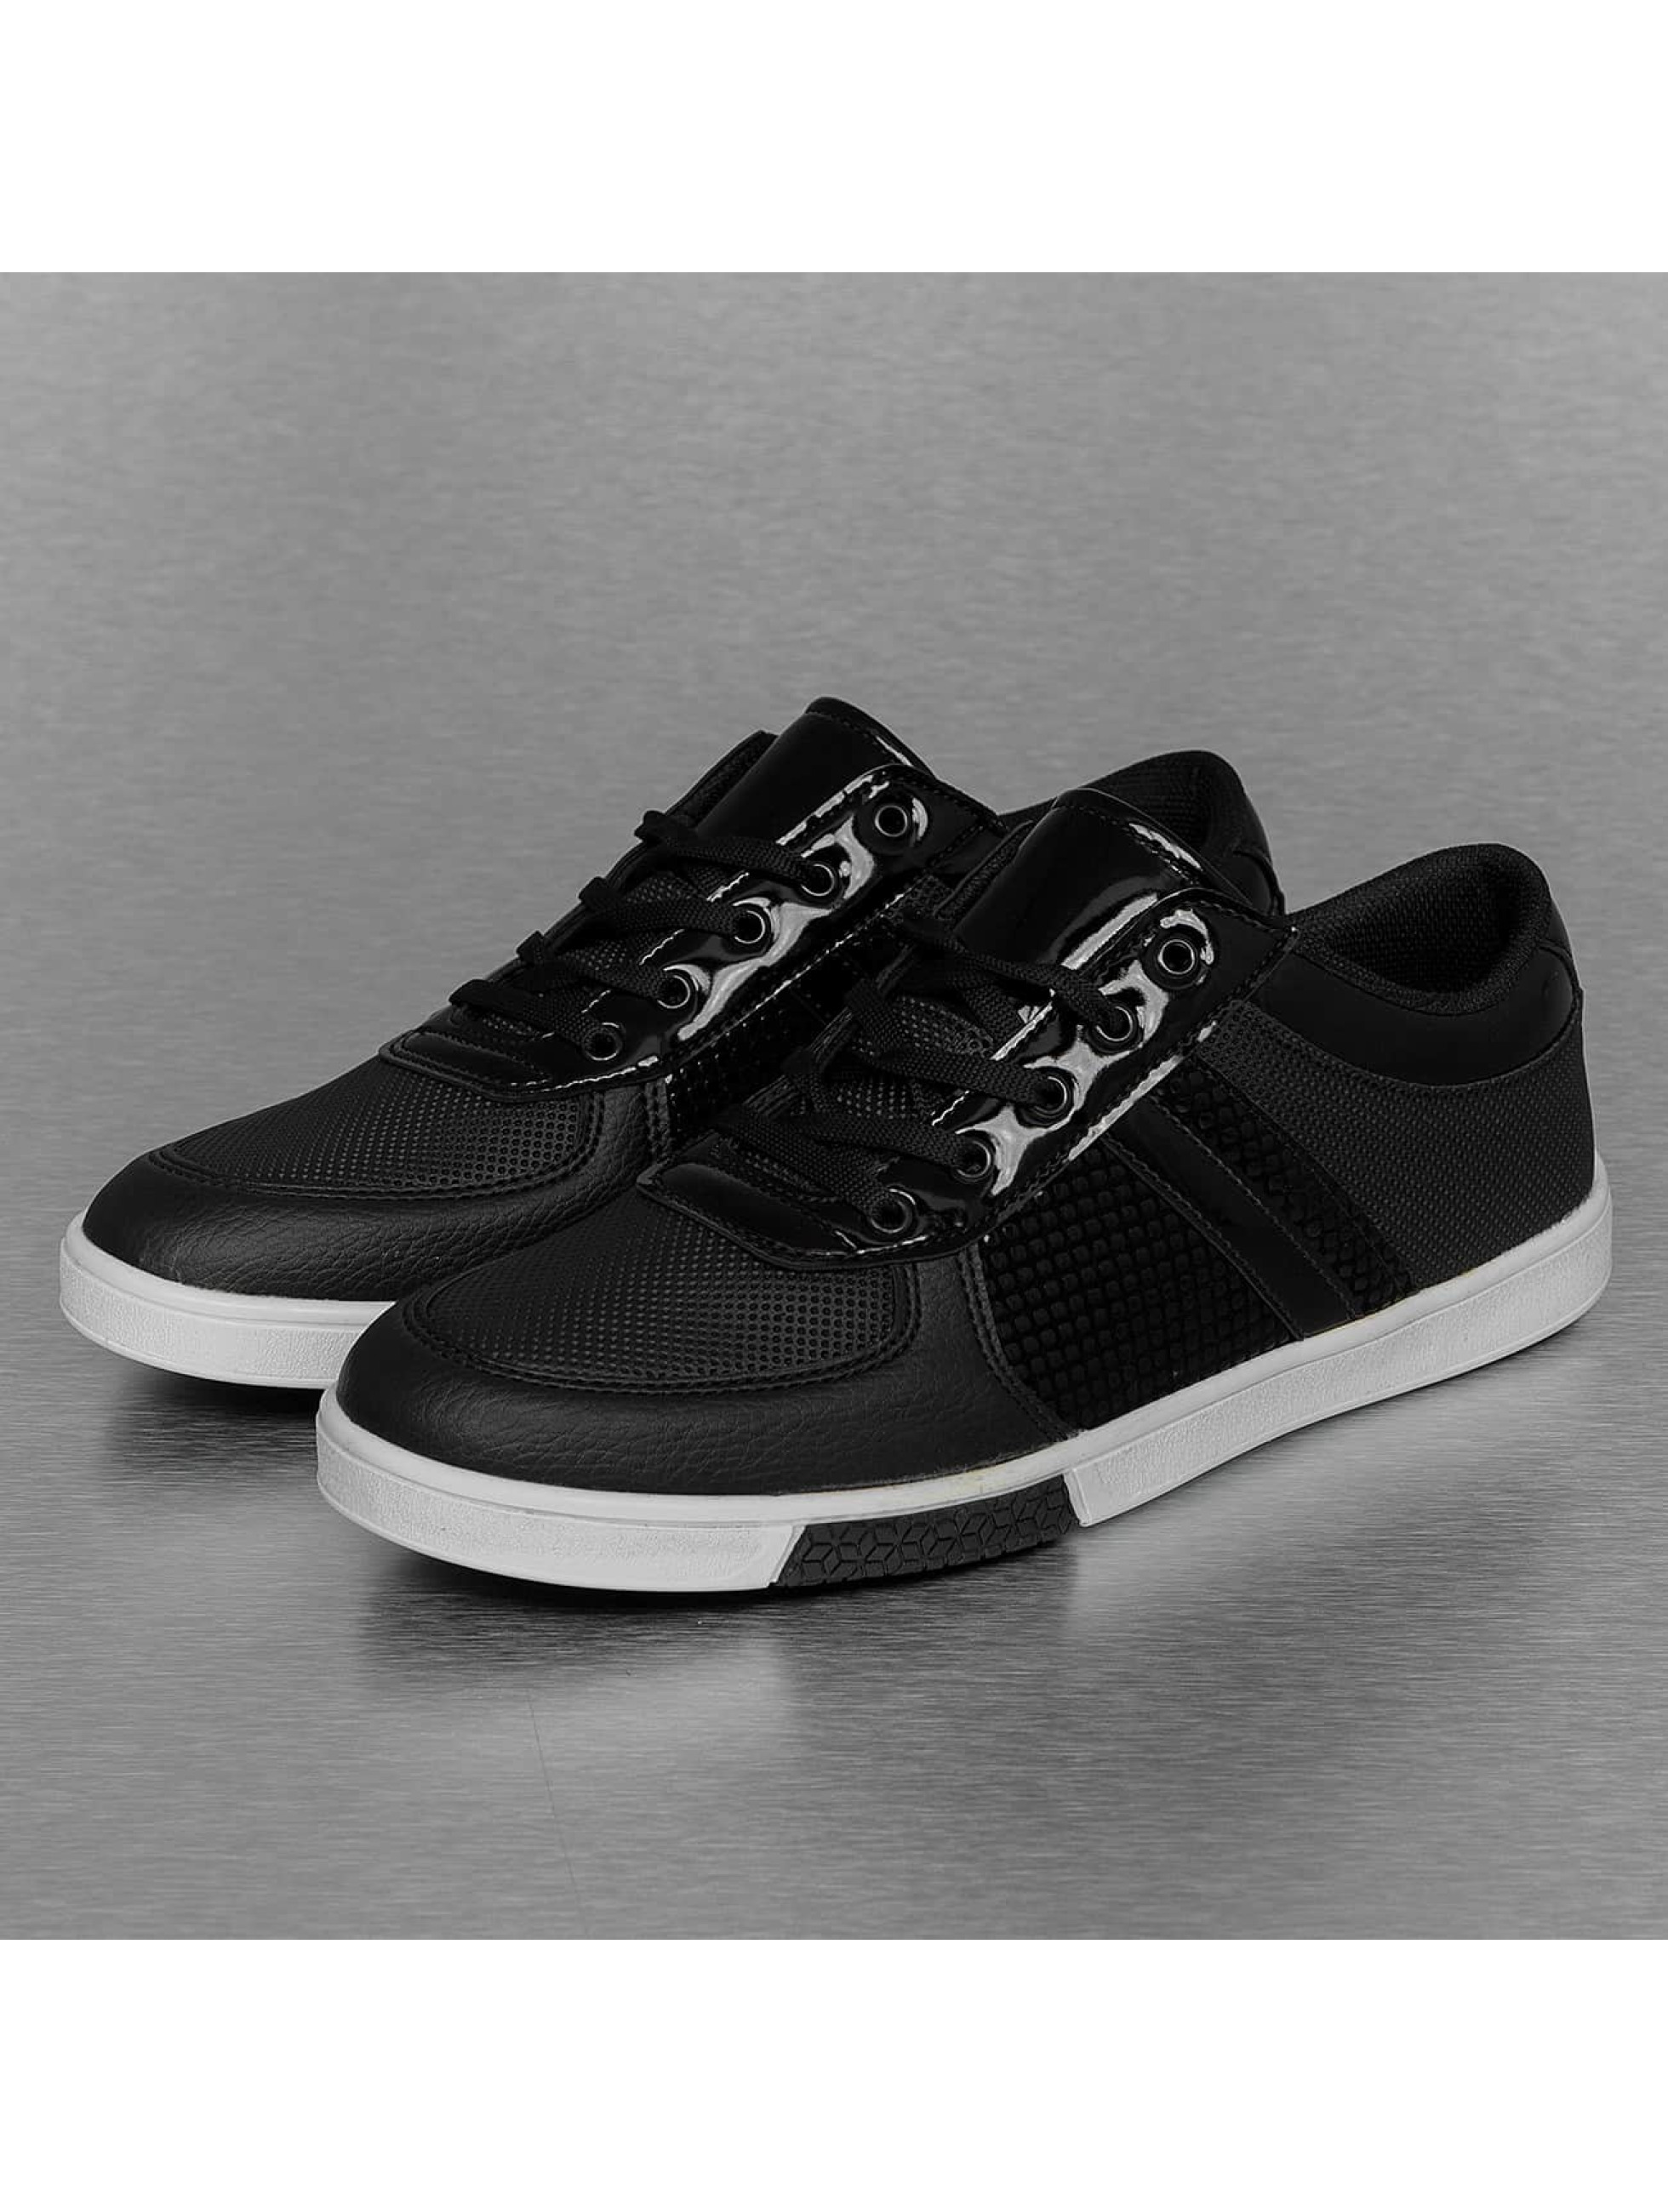 New York Style Sneakers Perforated Pattern black